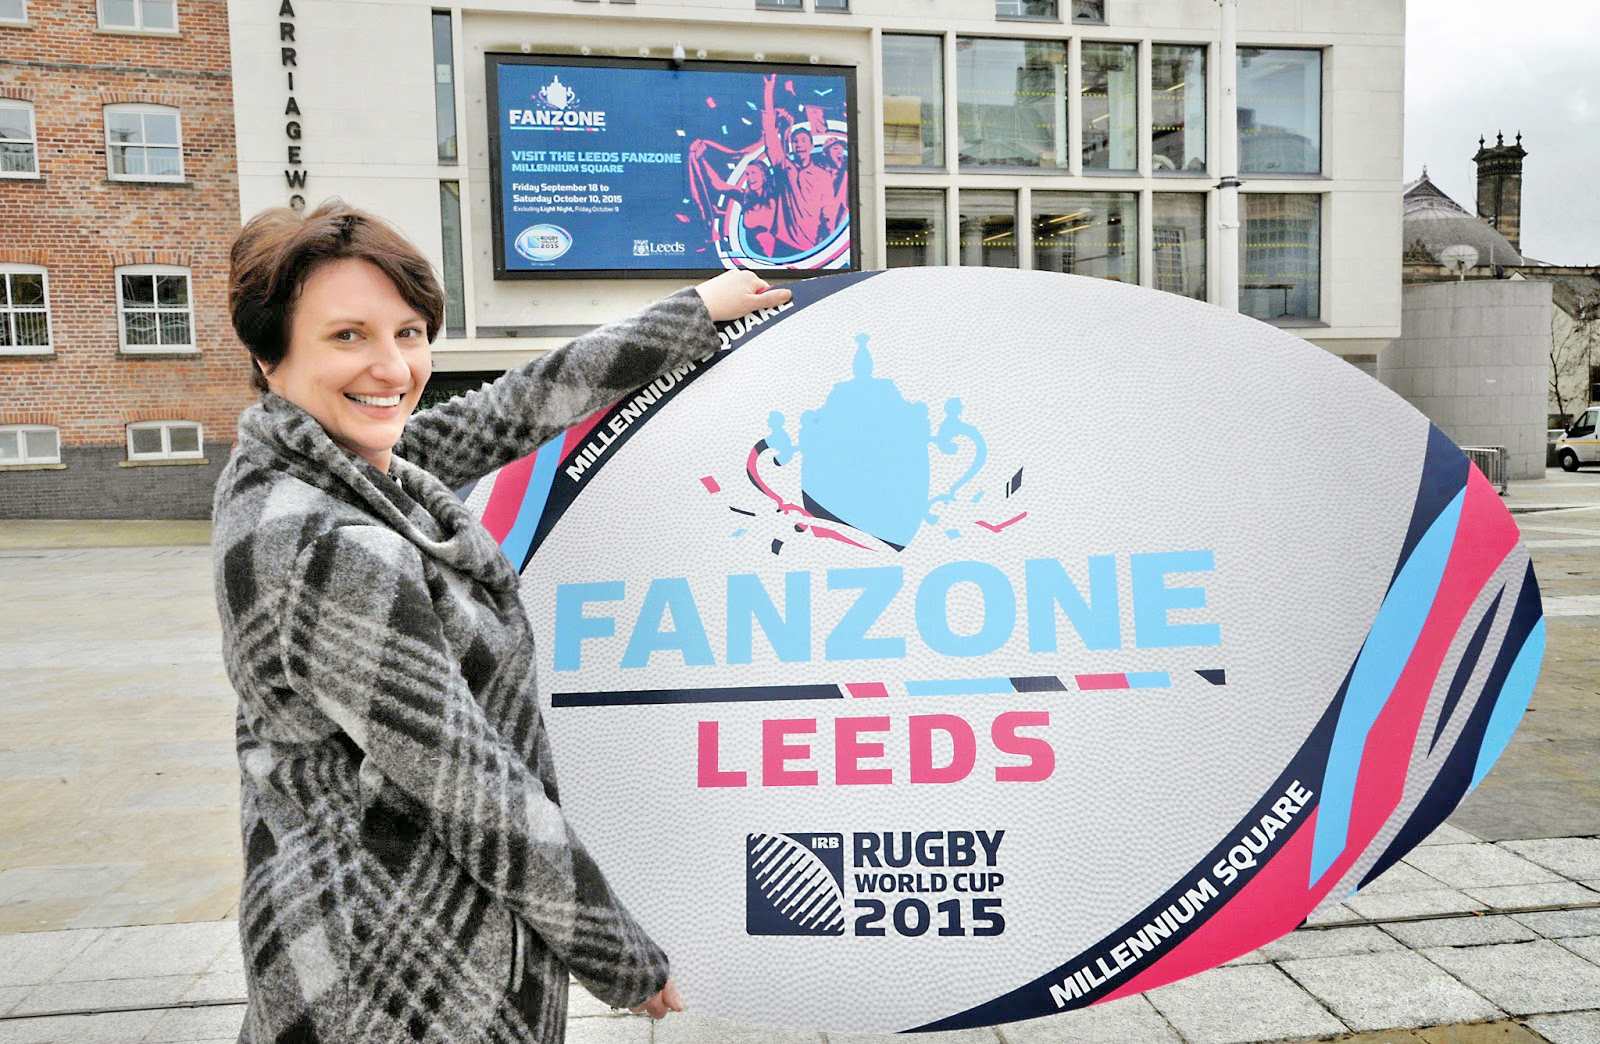 Millennium Square To Host Rugby World Cup Fanzone